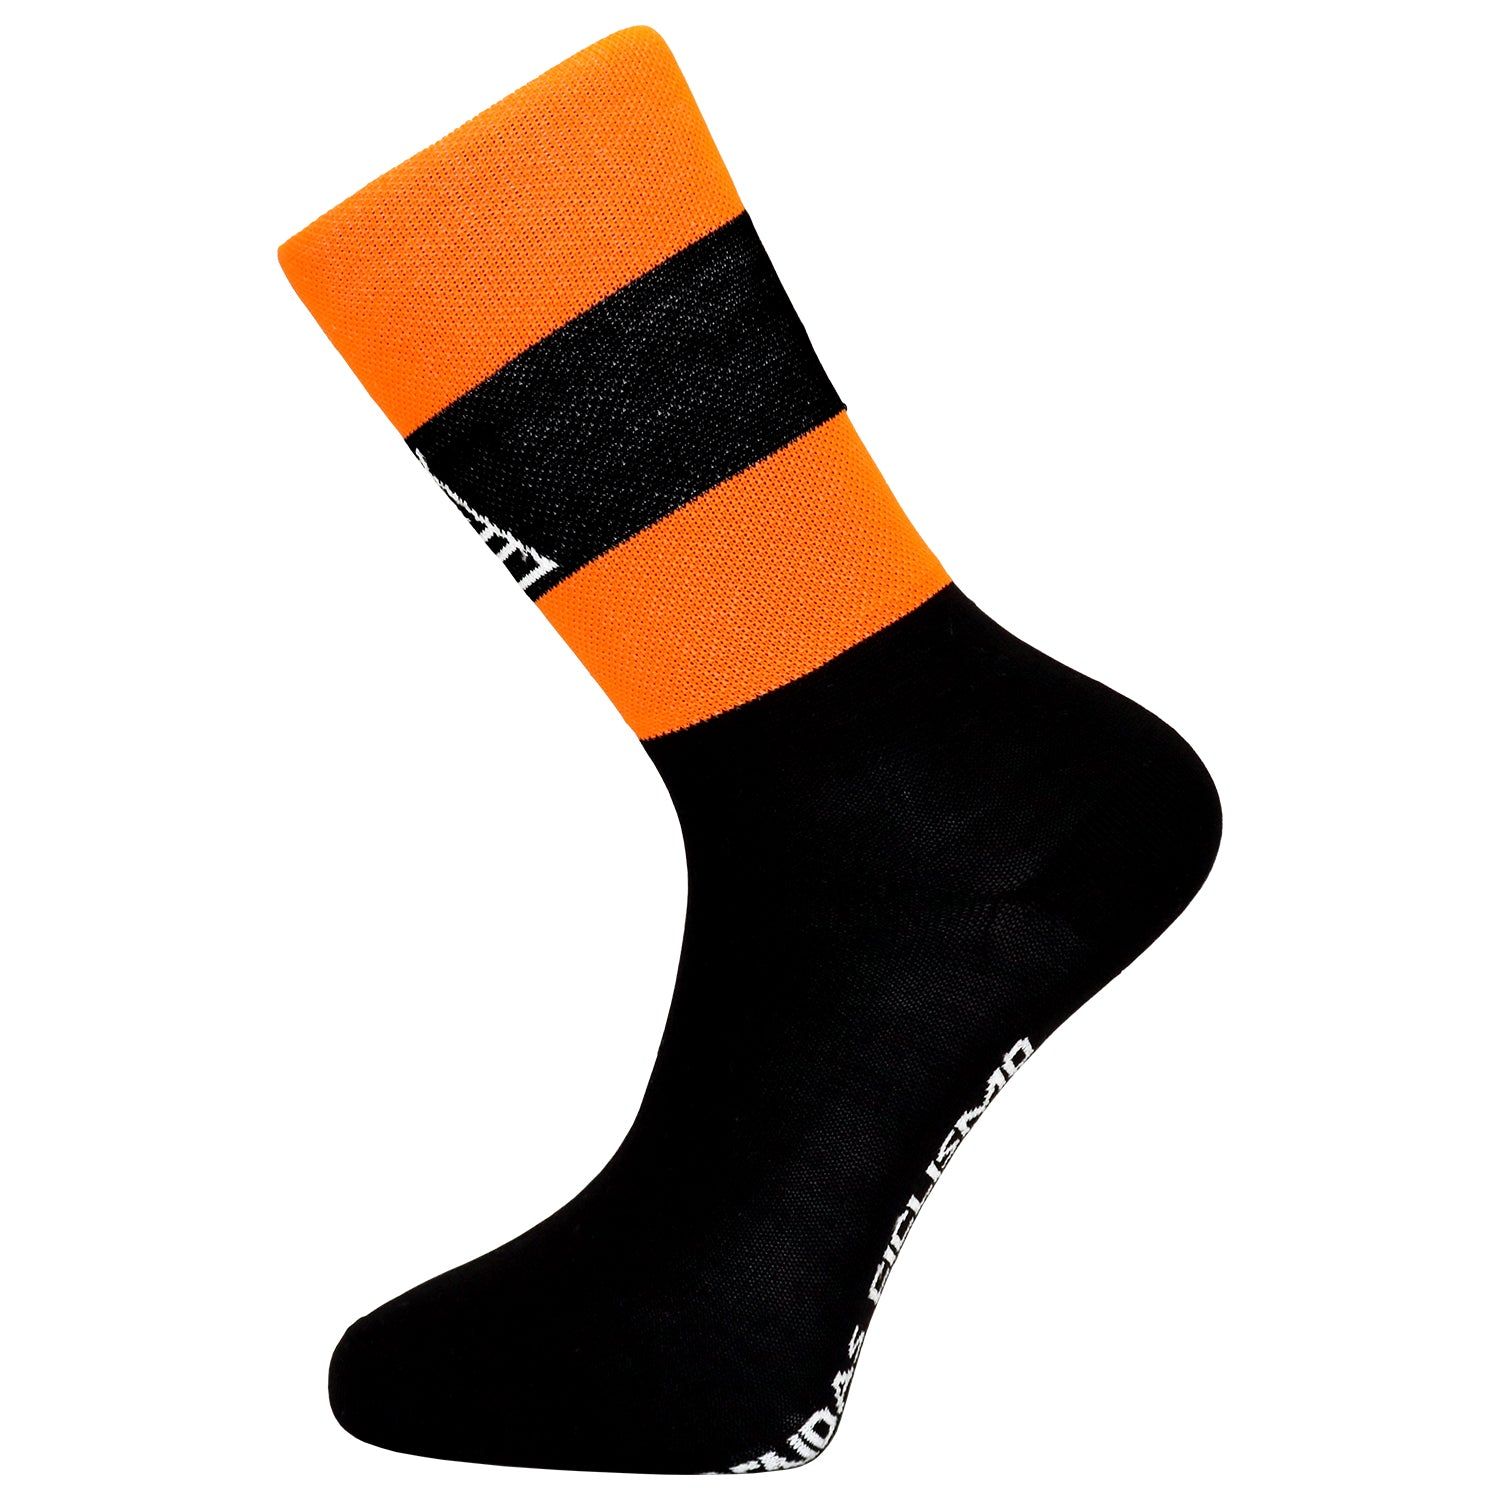 Prendas Ciclismo Fluoro Orange Tall Coolmax Socks